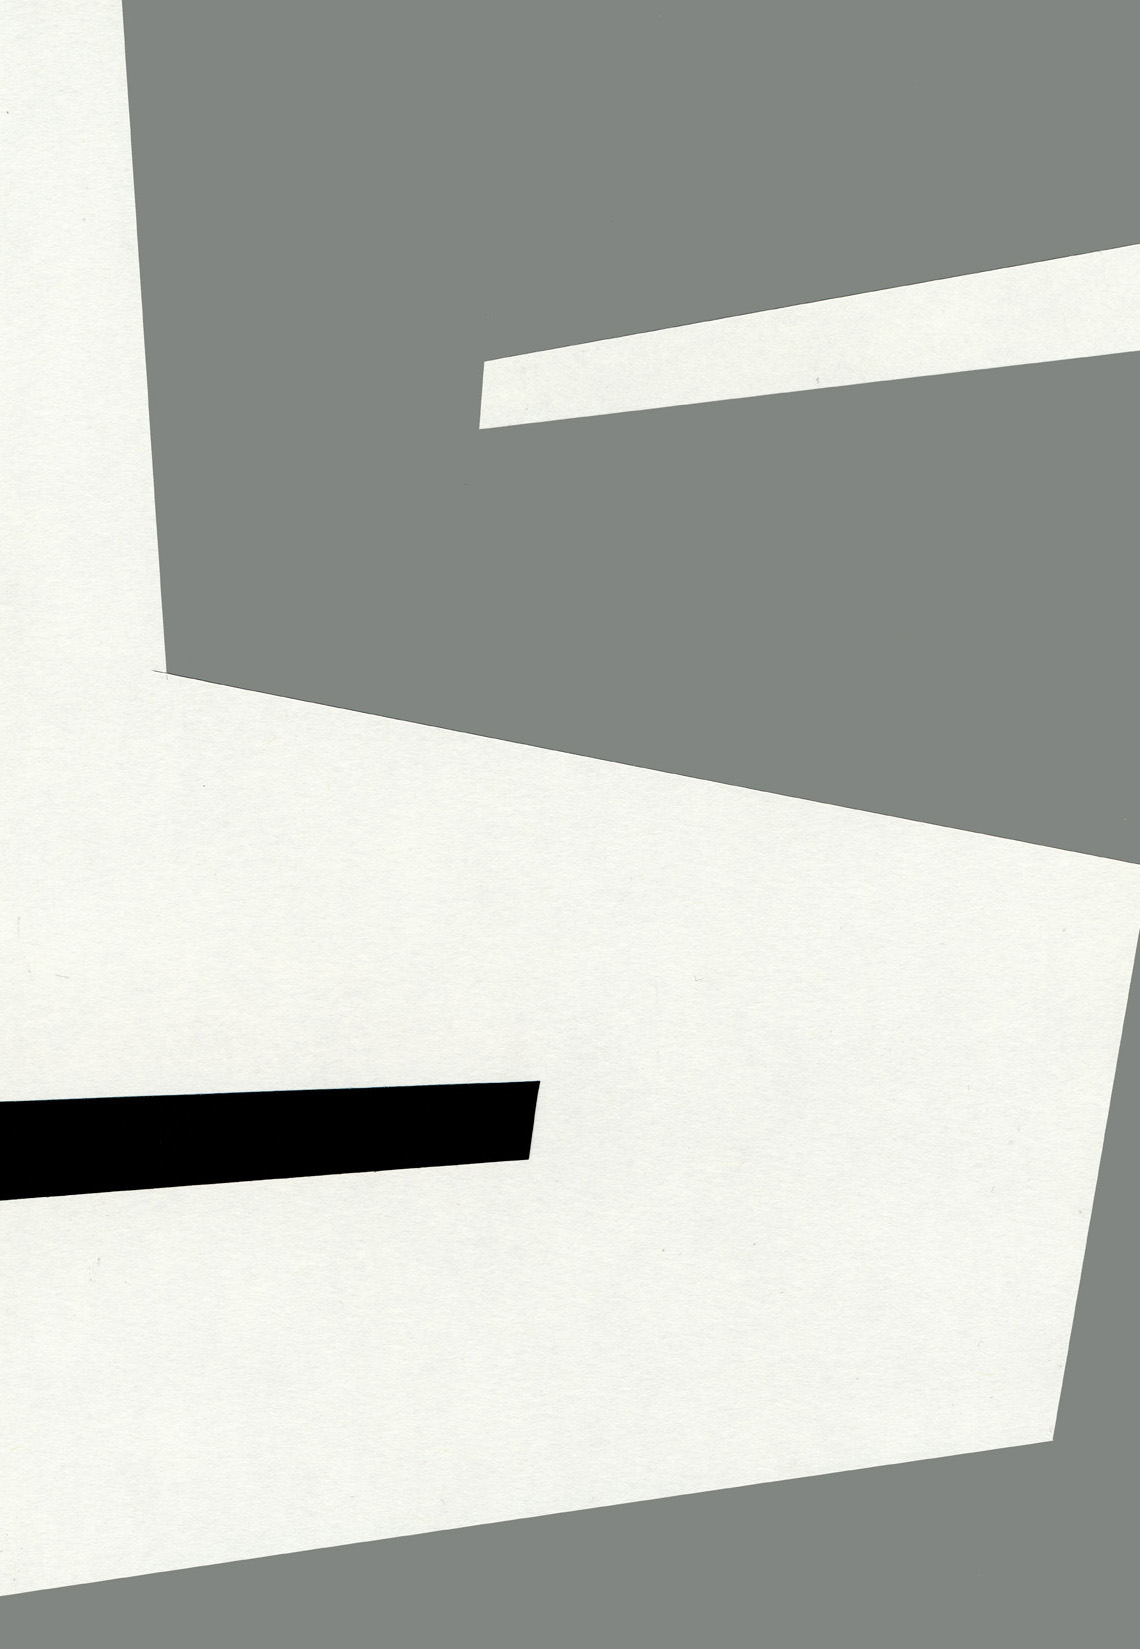 Intervention, cut paper, Mike Tedder